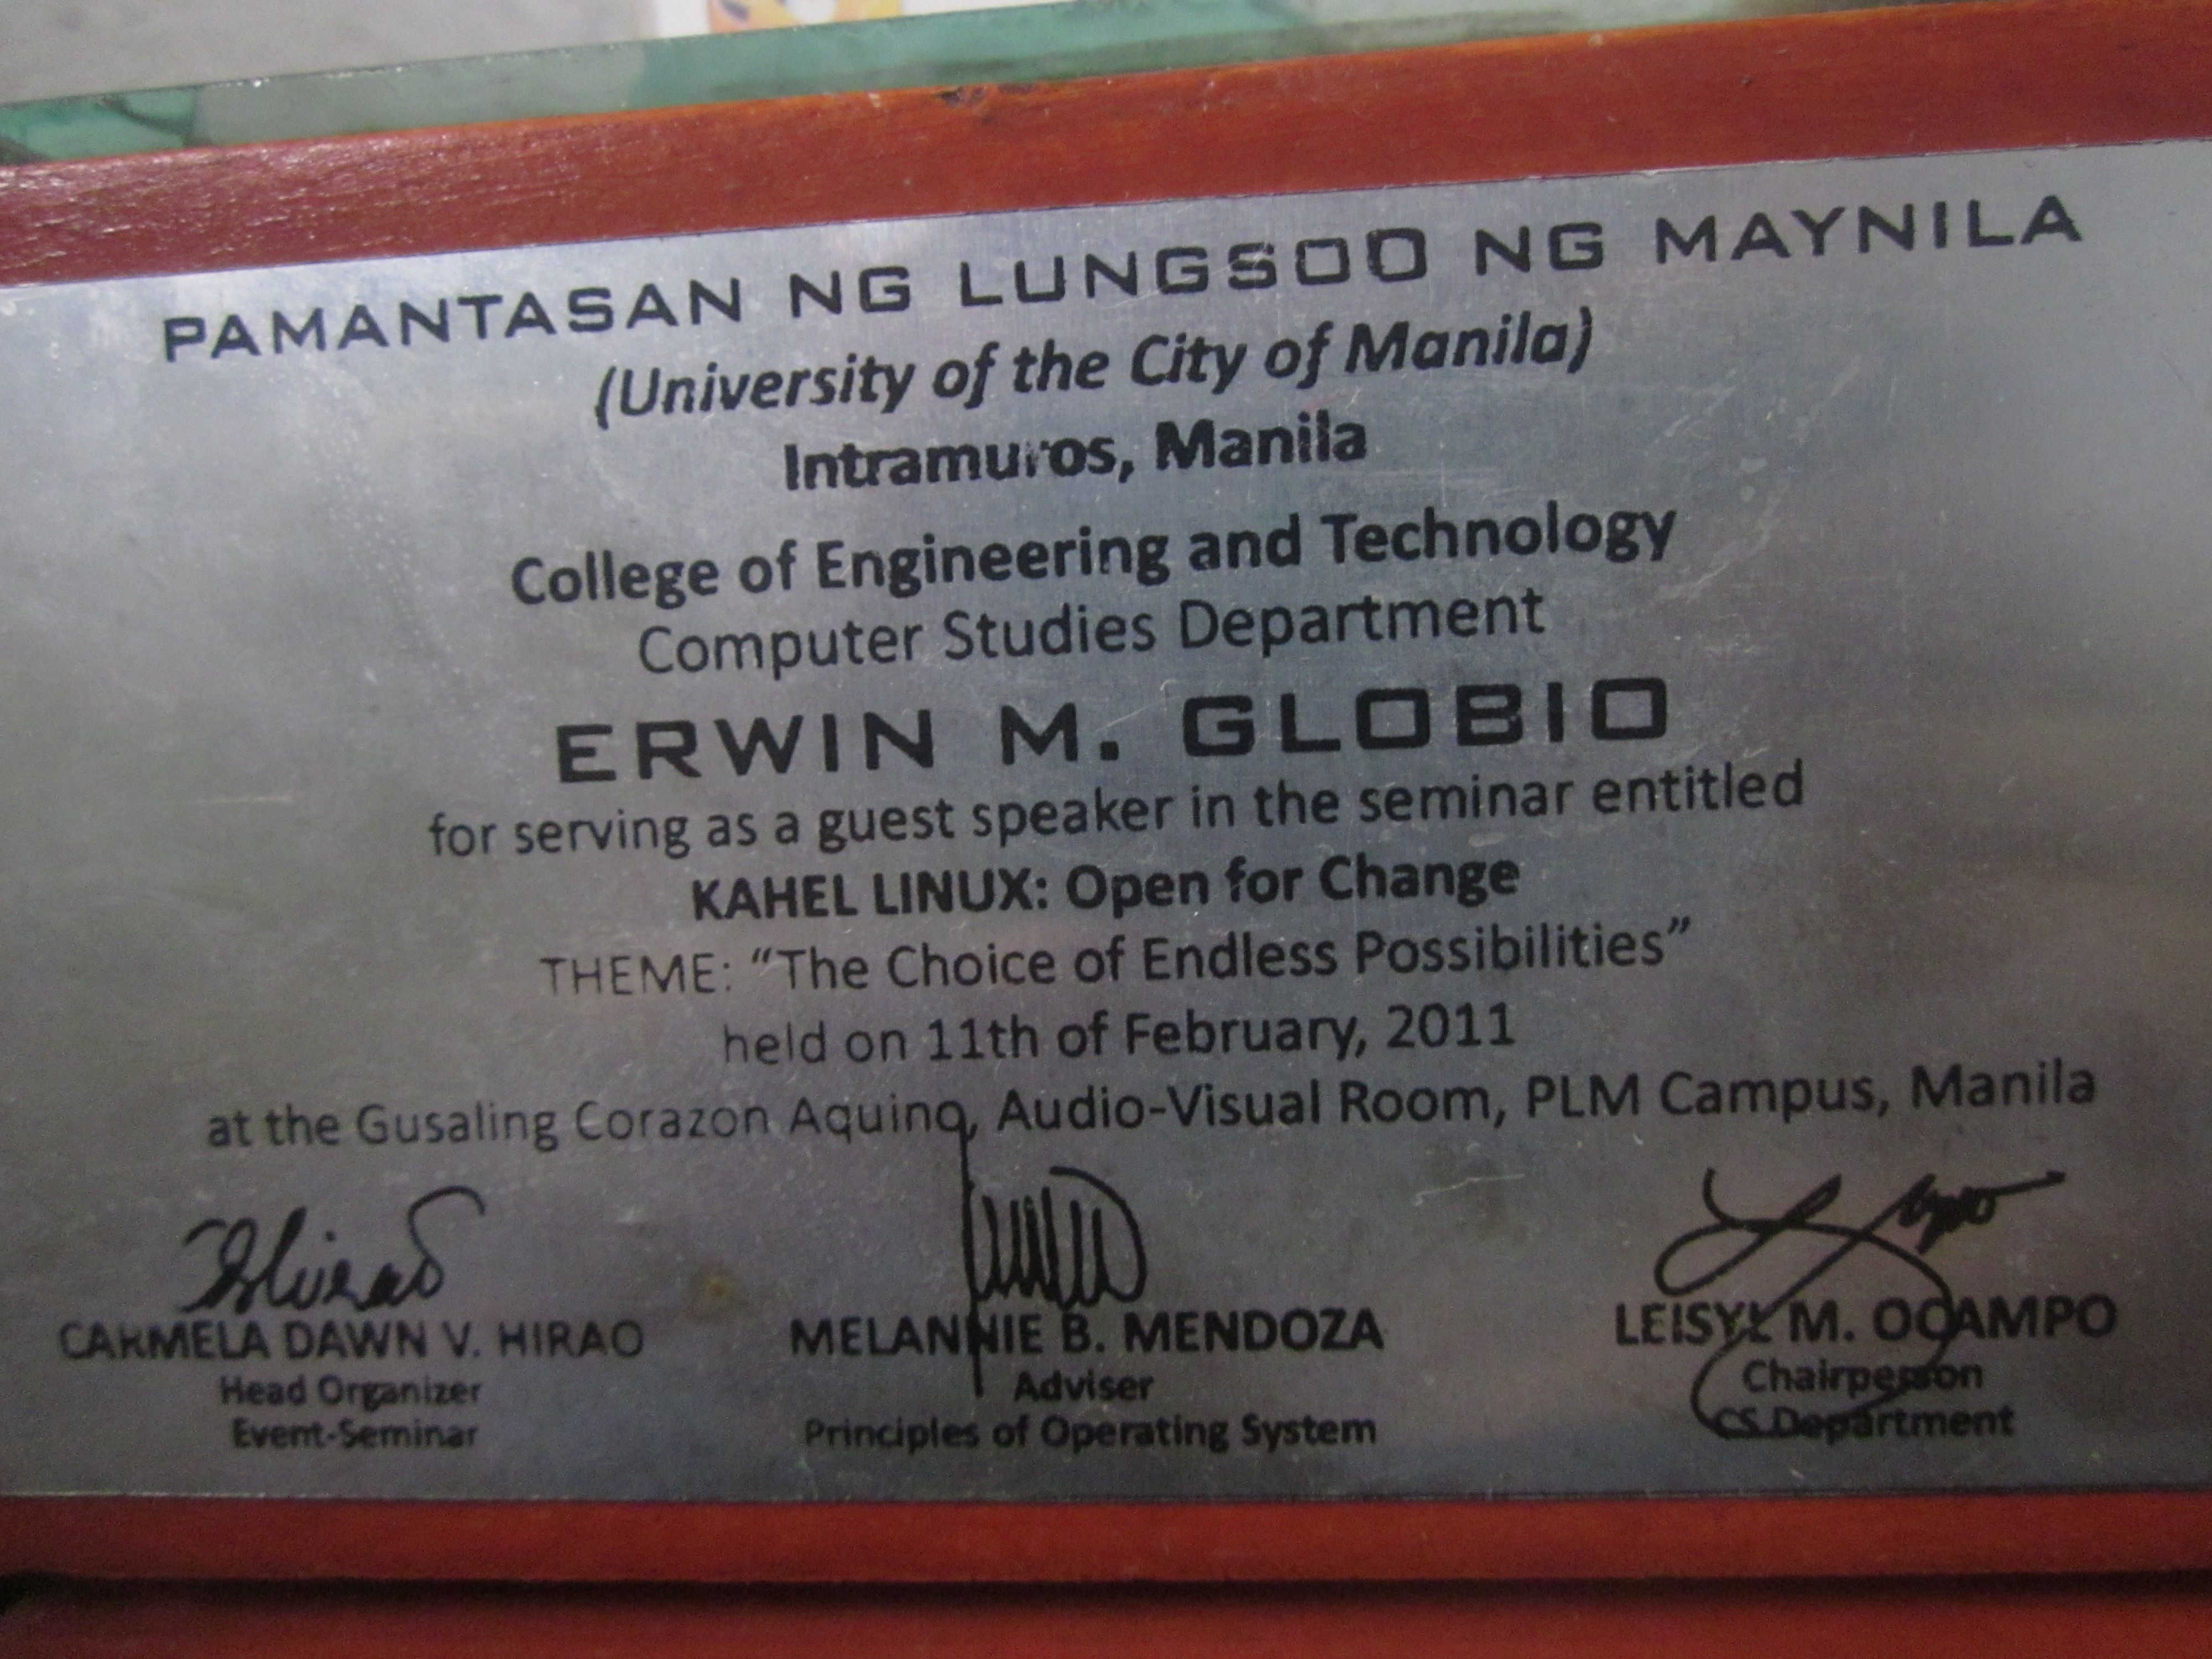 Prof erwin globios certificate of appreciation http erwin globios certificate of appreciation httpeglobiotraining yelopaper Choice Image